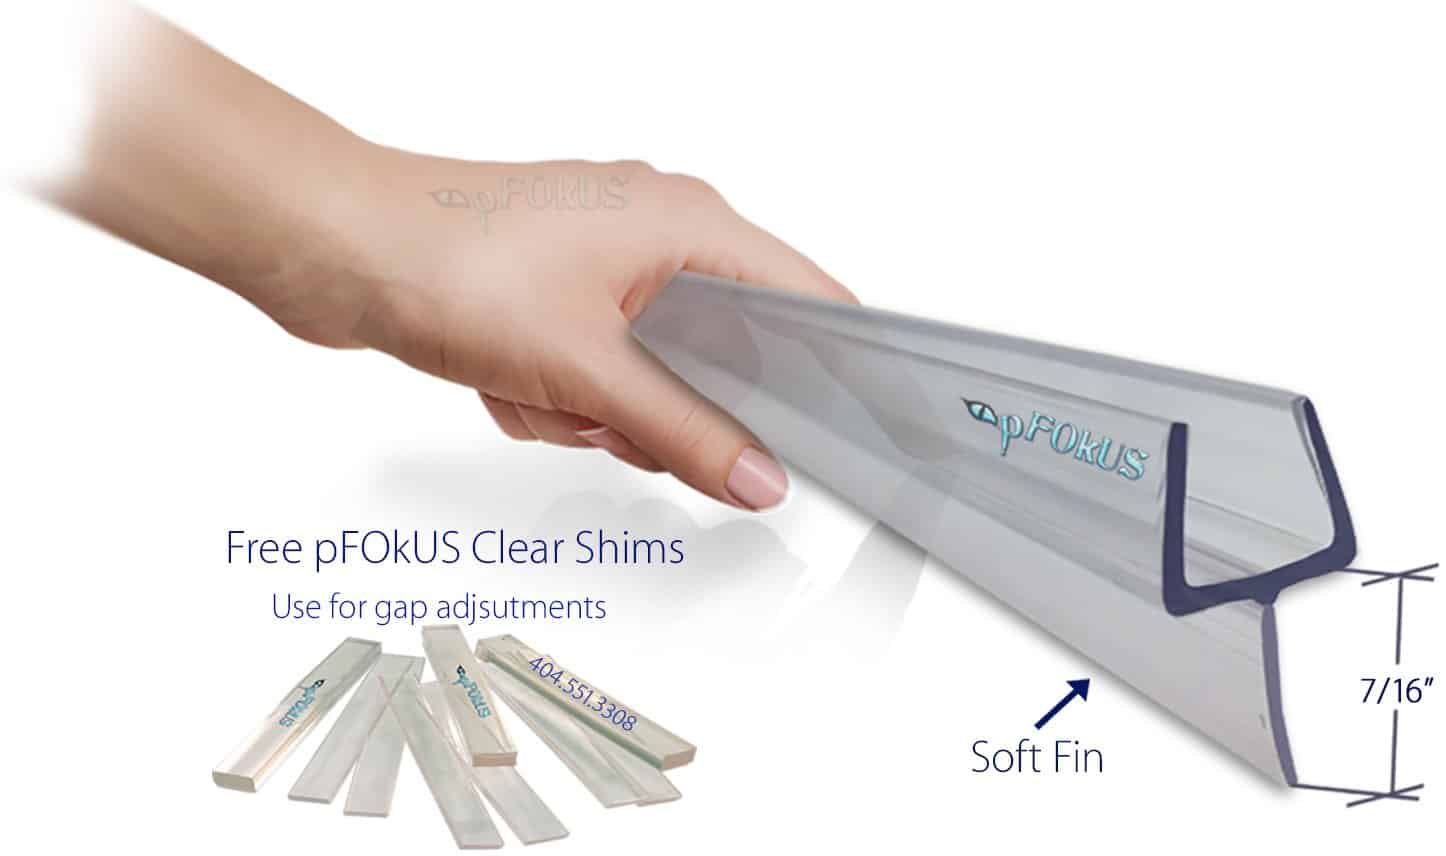 DS932225 free pfokus clear shims